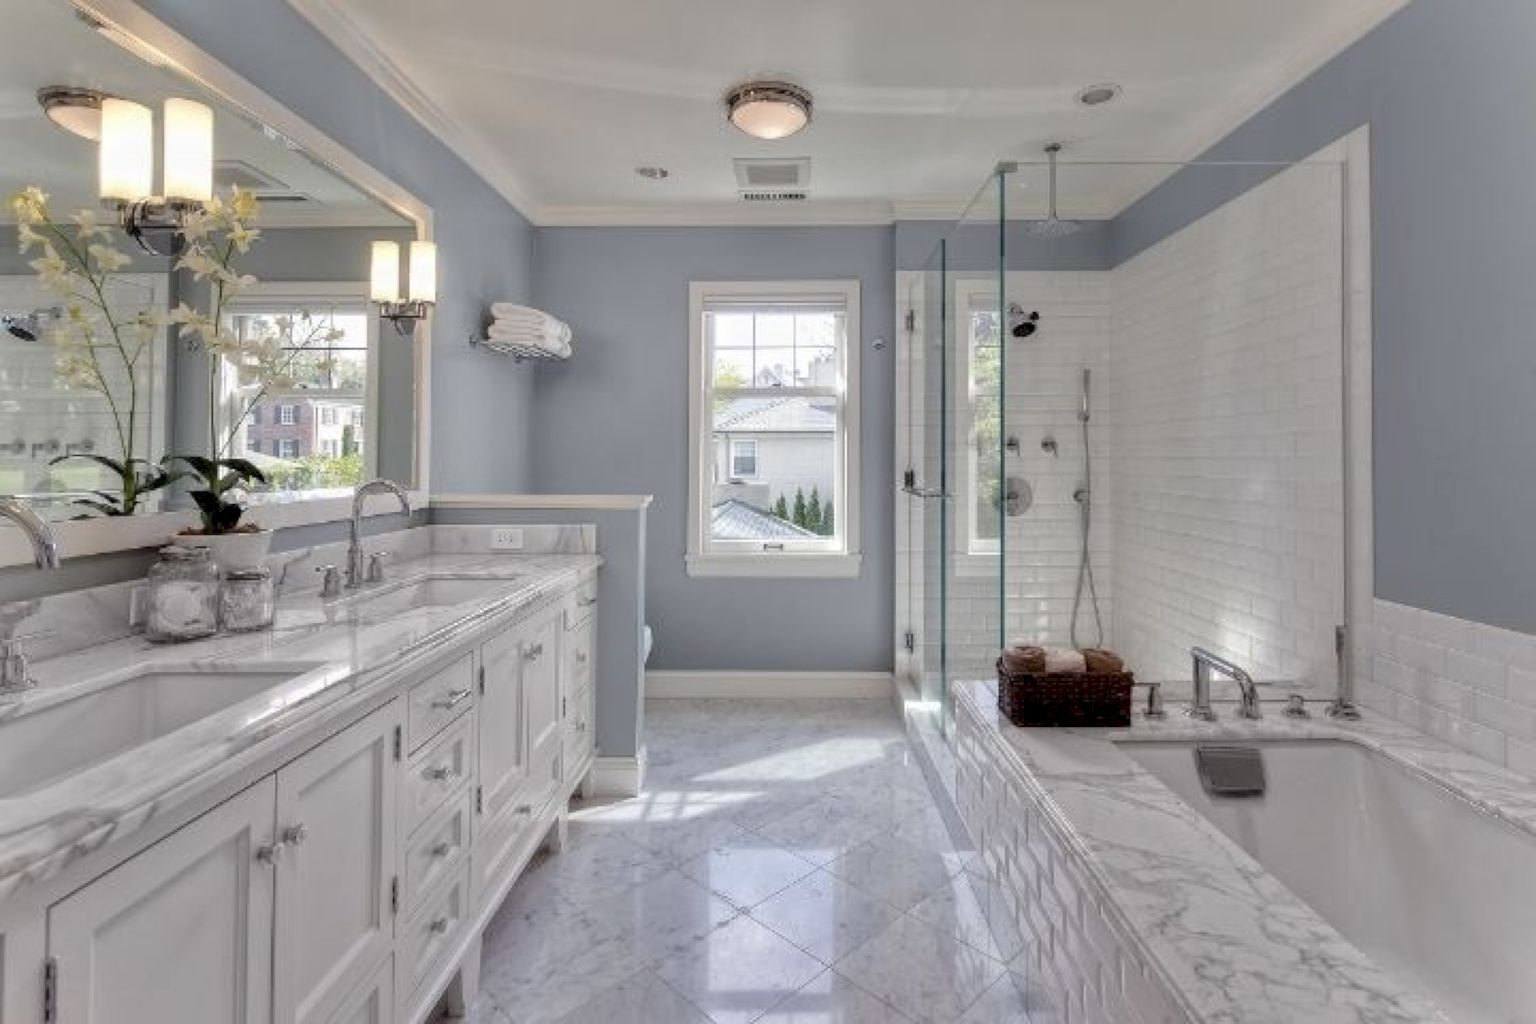 Master bedroom jacuzzi designs   Awesome Master Bathroom Ideas  Master bathrooms Bath and Bath